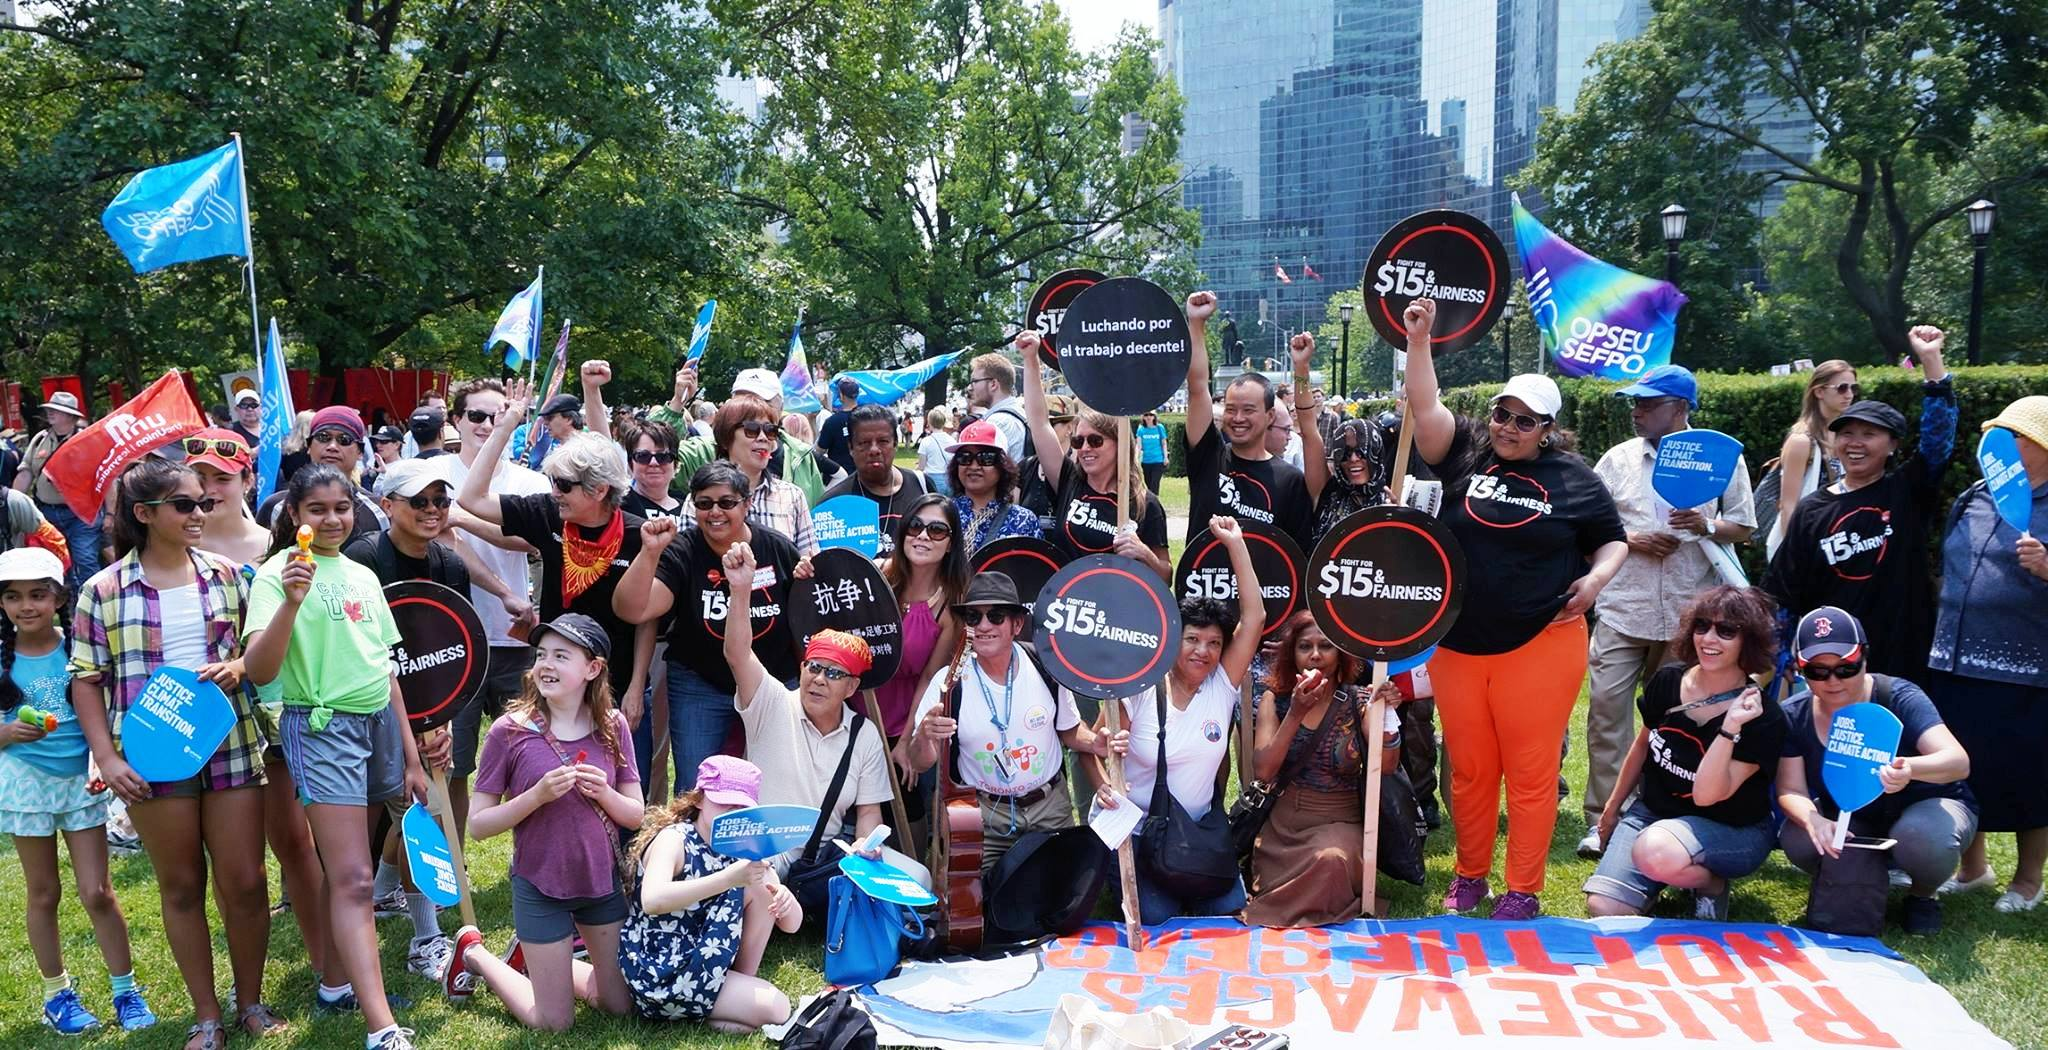 Group picture or Workers' Action Centre after March for Jobs, Justice & the Climate in 2015.